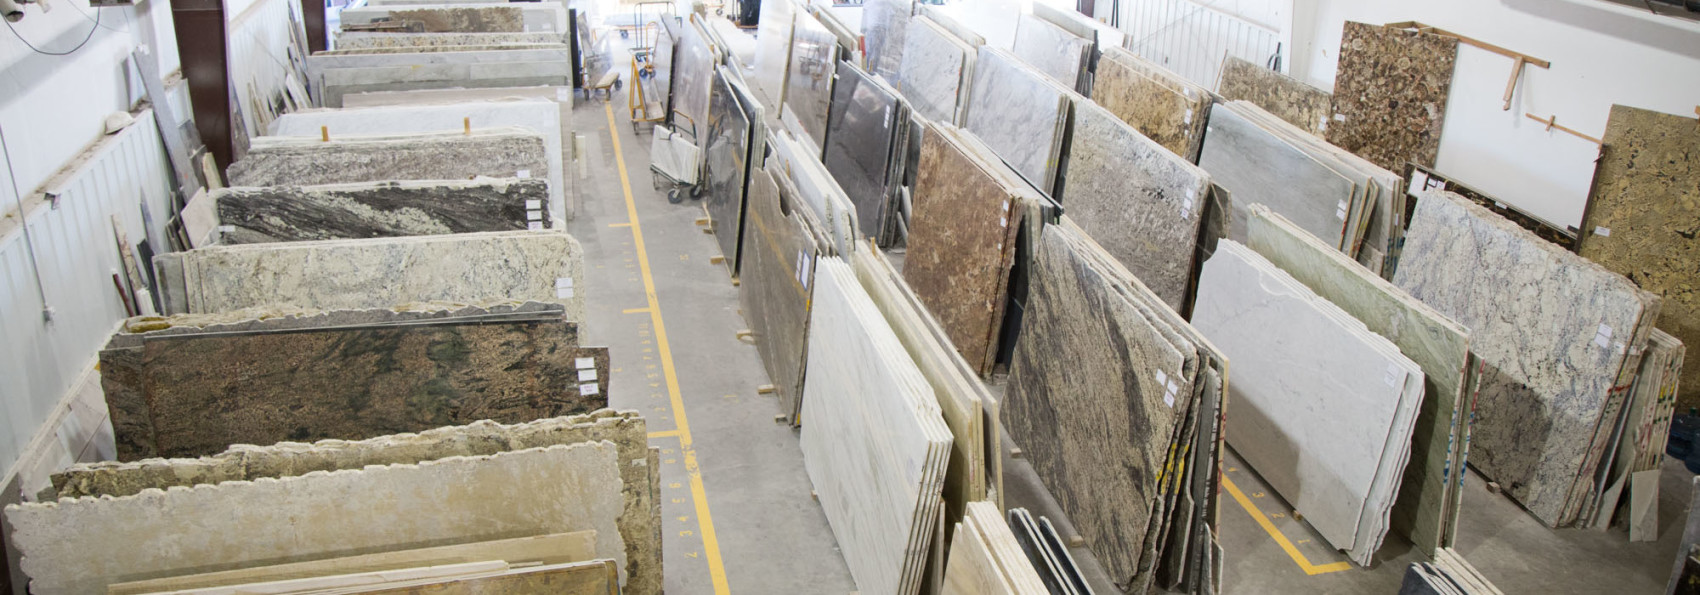 eurocraft granite marble fabrication slabs